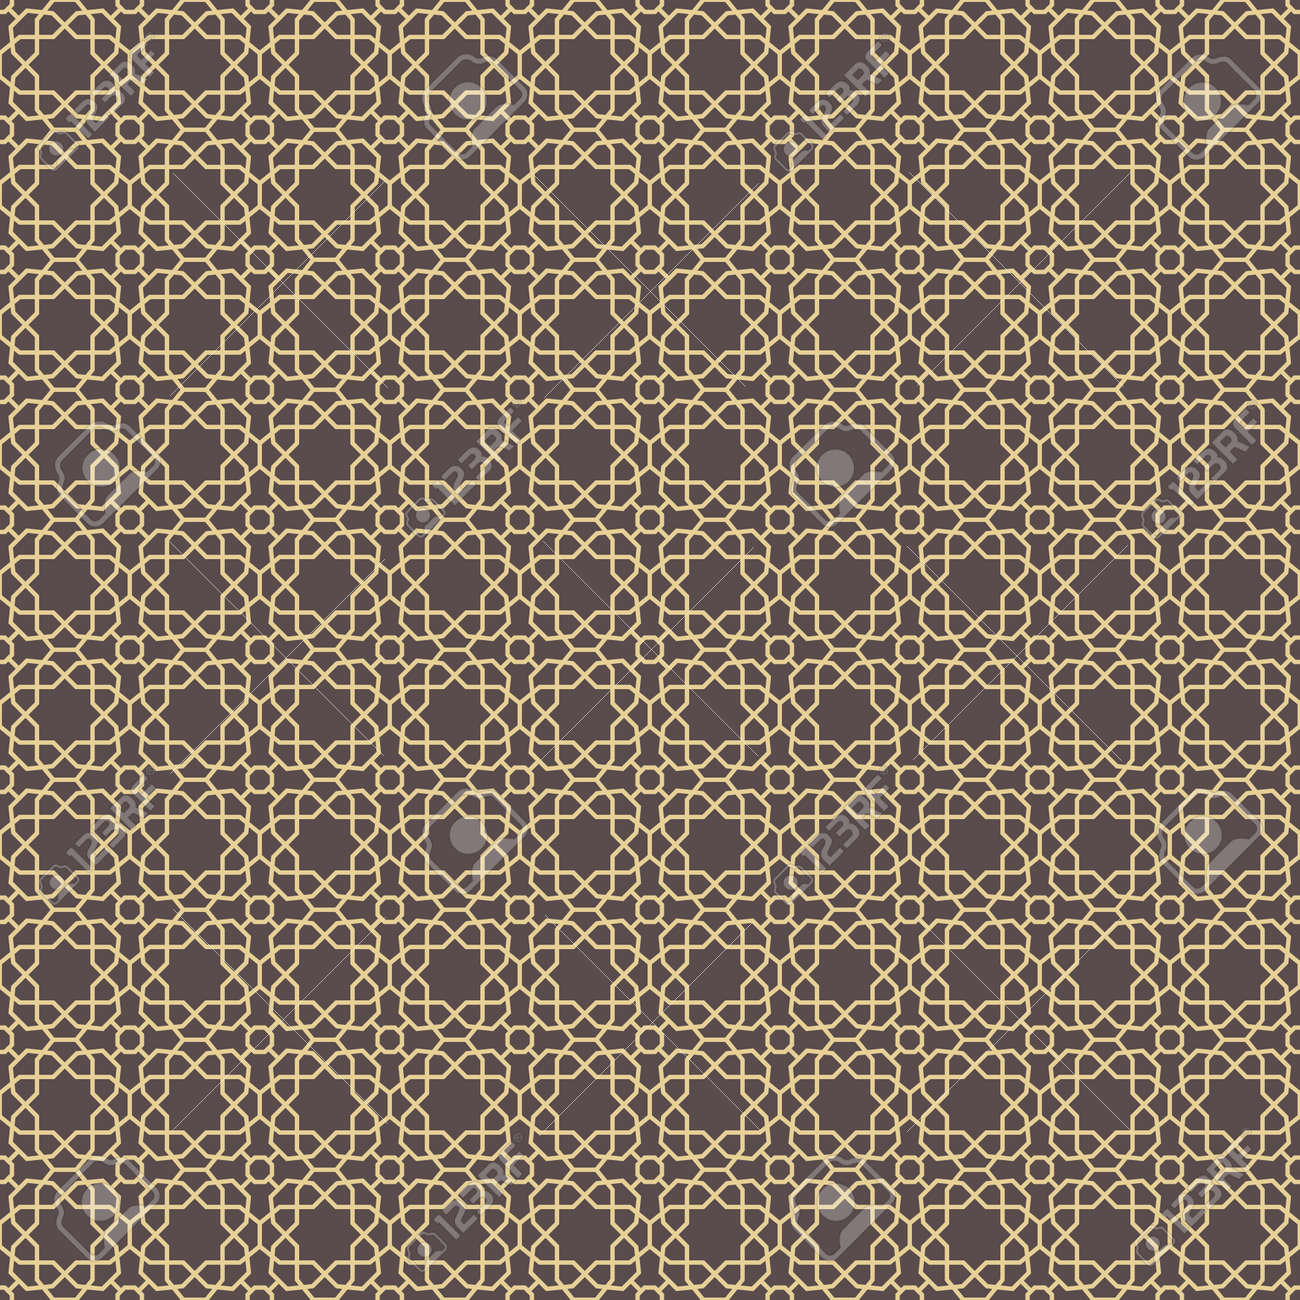 Seamless Geometric Brown and Golden Background - 167039509